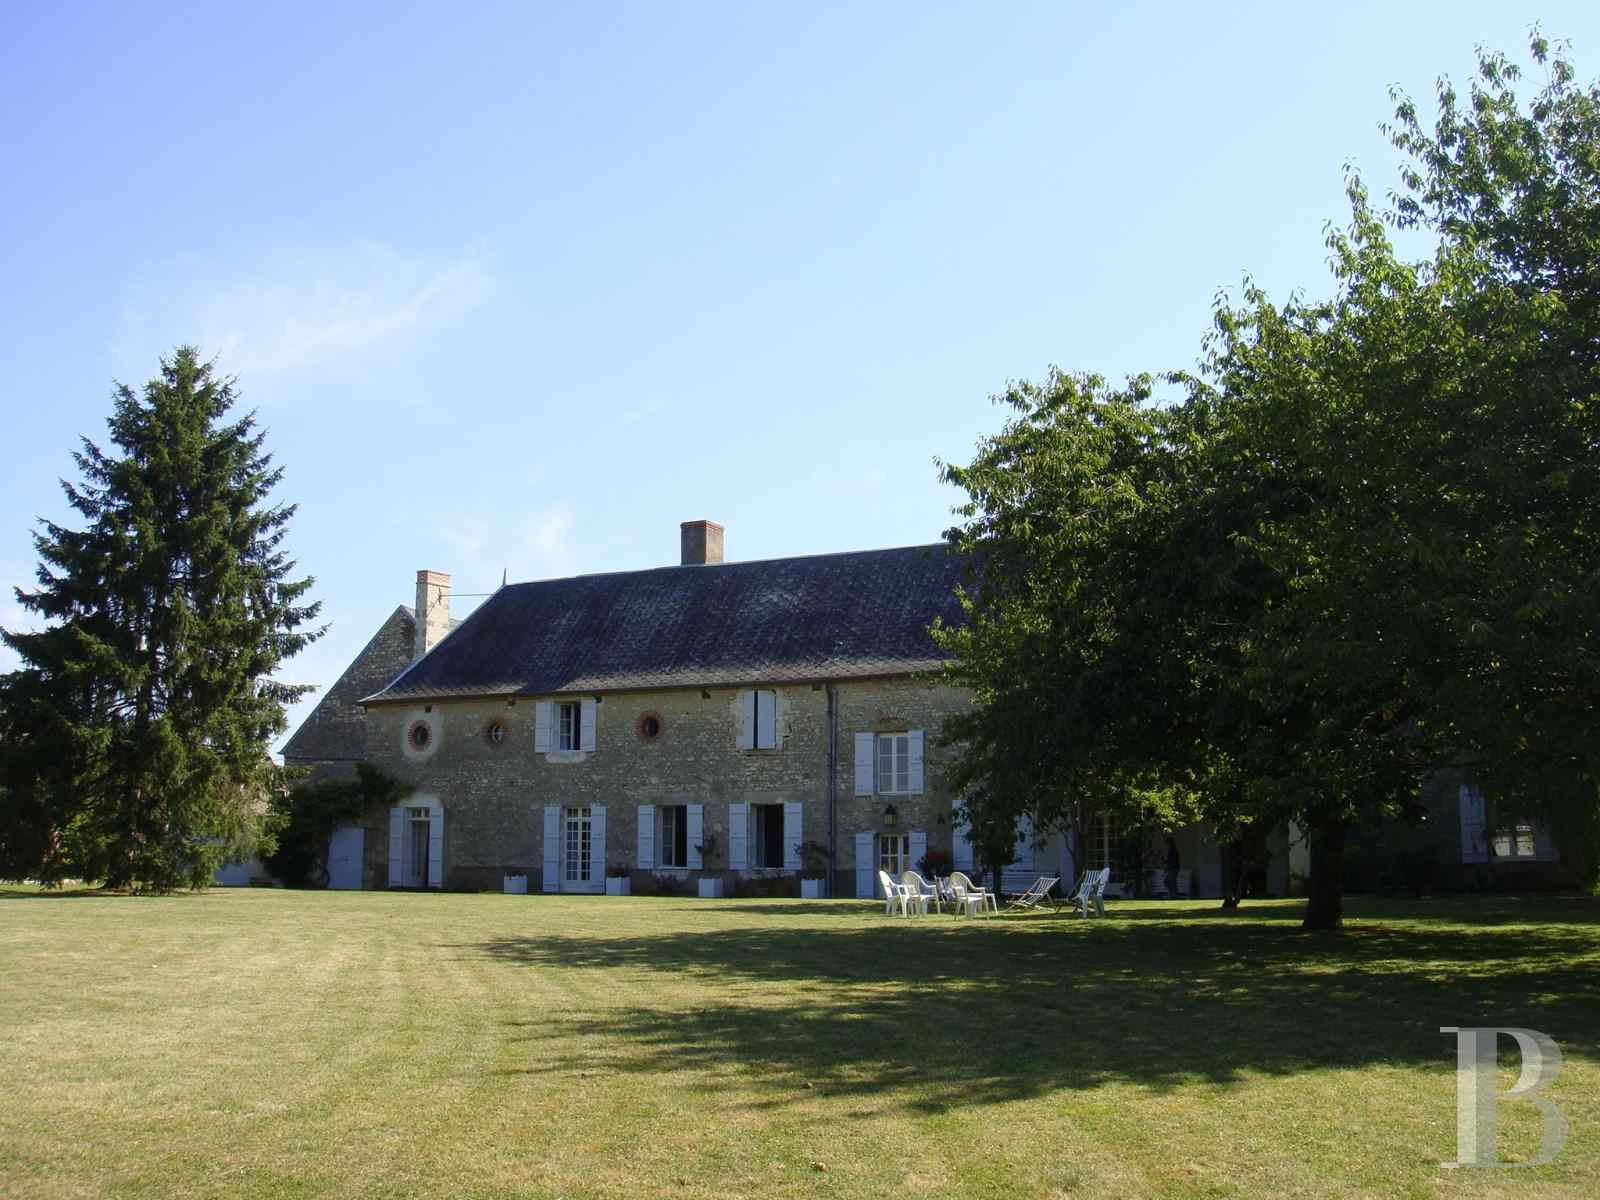 property for sale France center val de loire champagne berrichonne - 4 zoom